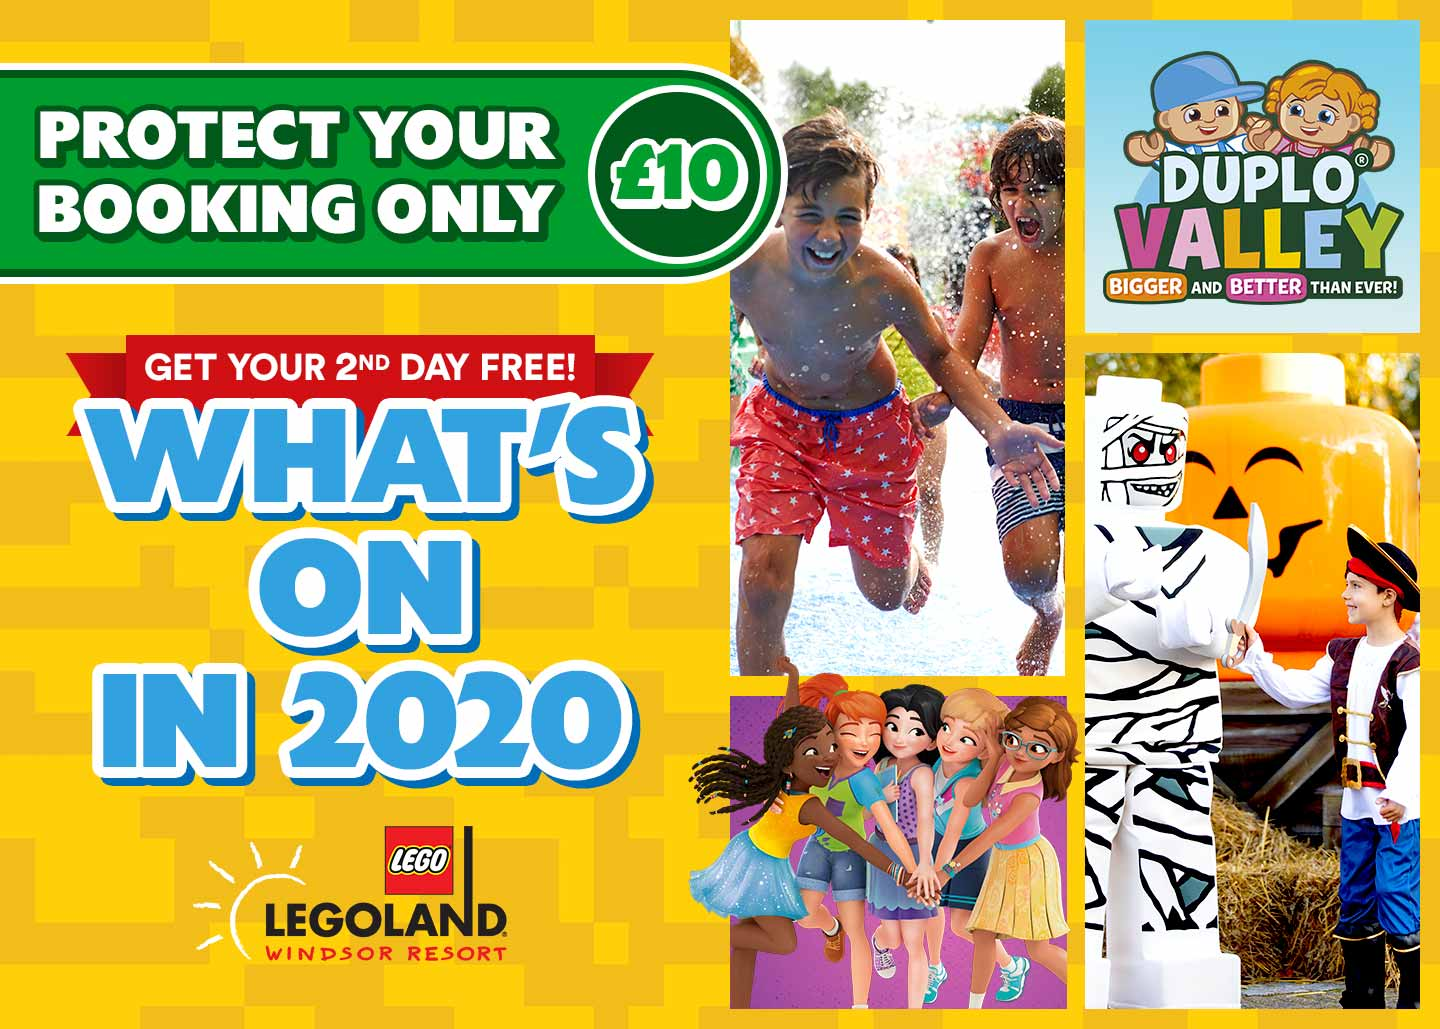 What's new in 2020 at the LEGOLAND Windsor Resort